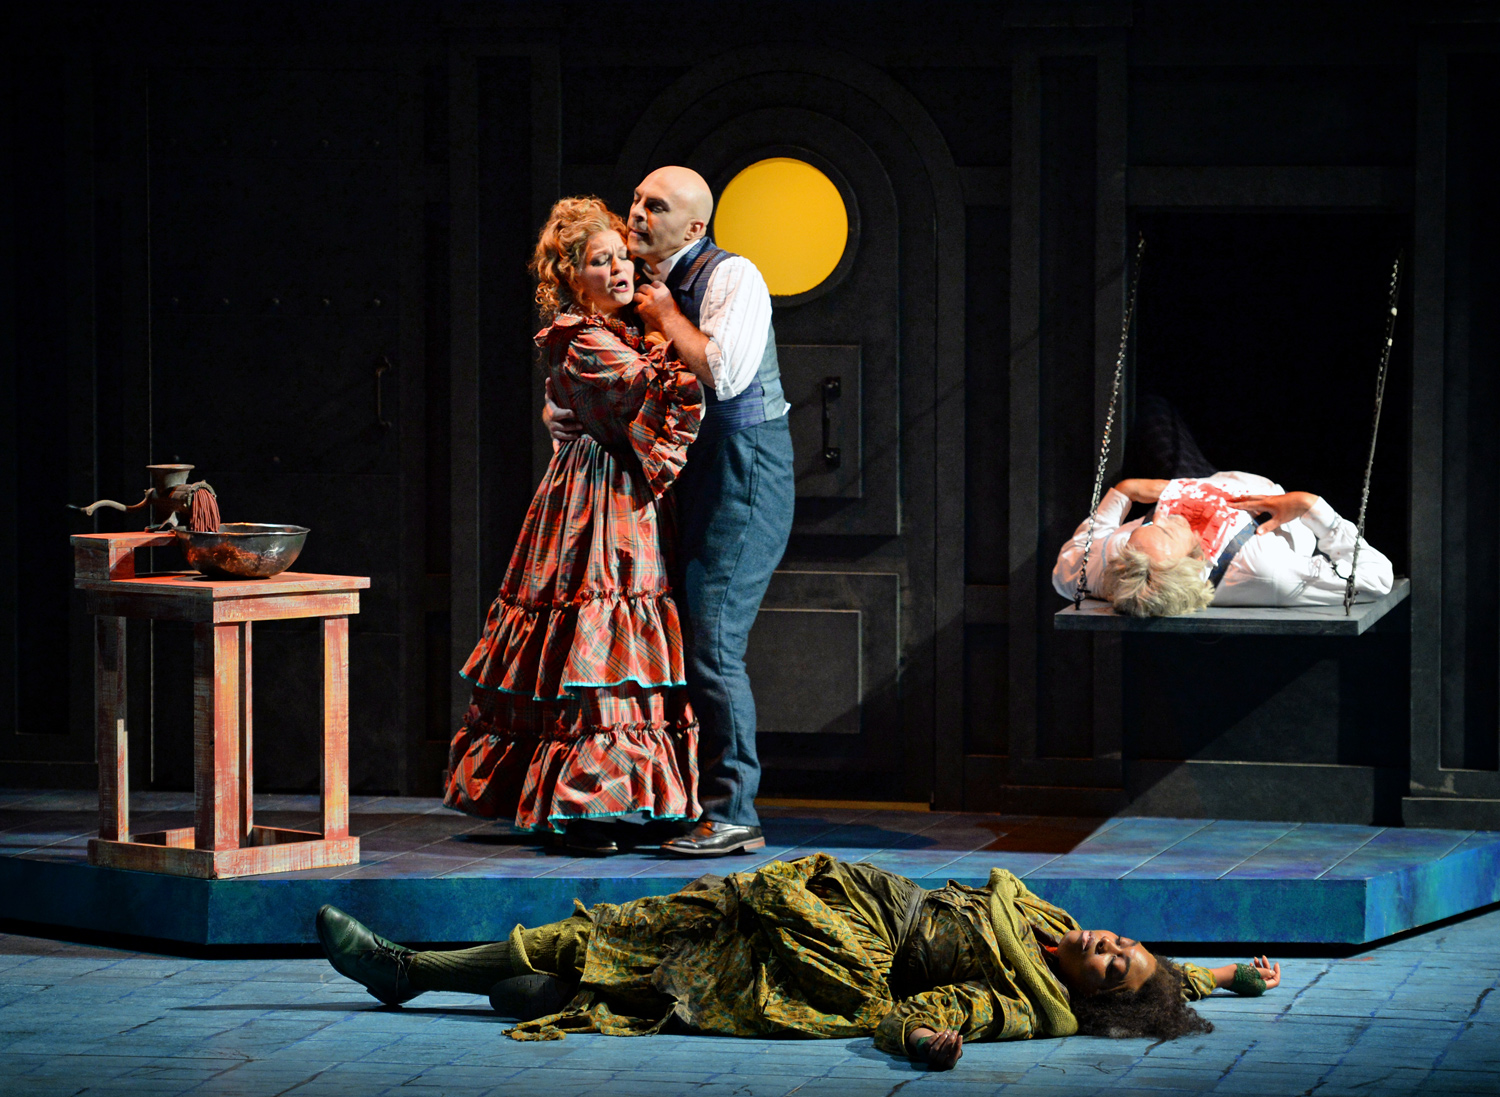 Lucy Schaufer as Mrs. Lovett, Zachary Nelson as Sweeney Todd, Zoie Reams as Beggar Woman and Wayne Tigges as Turpin